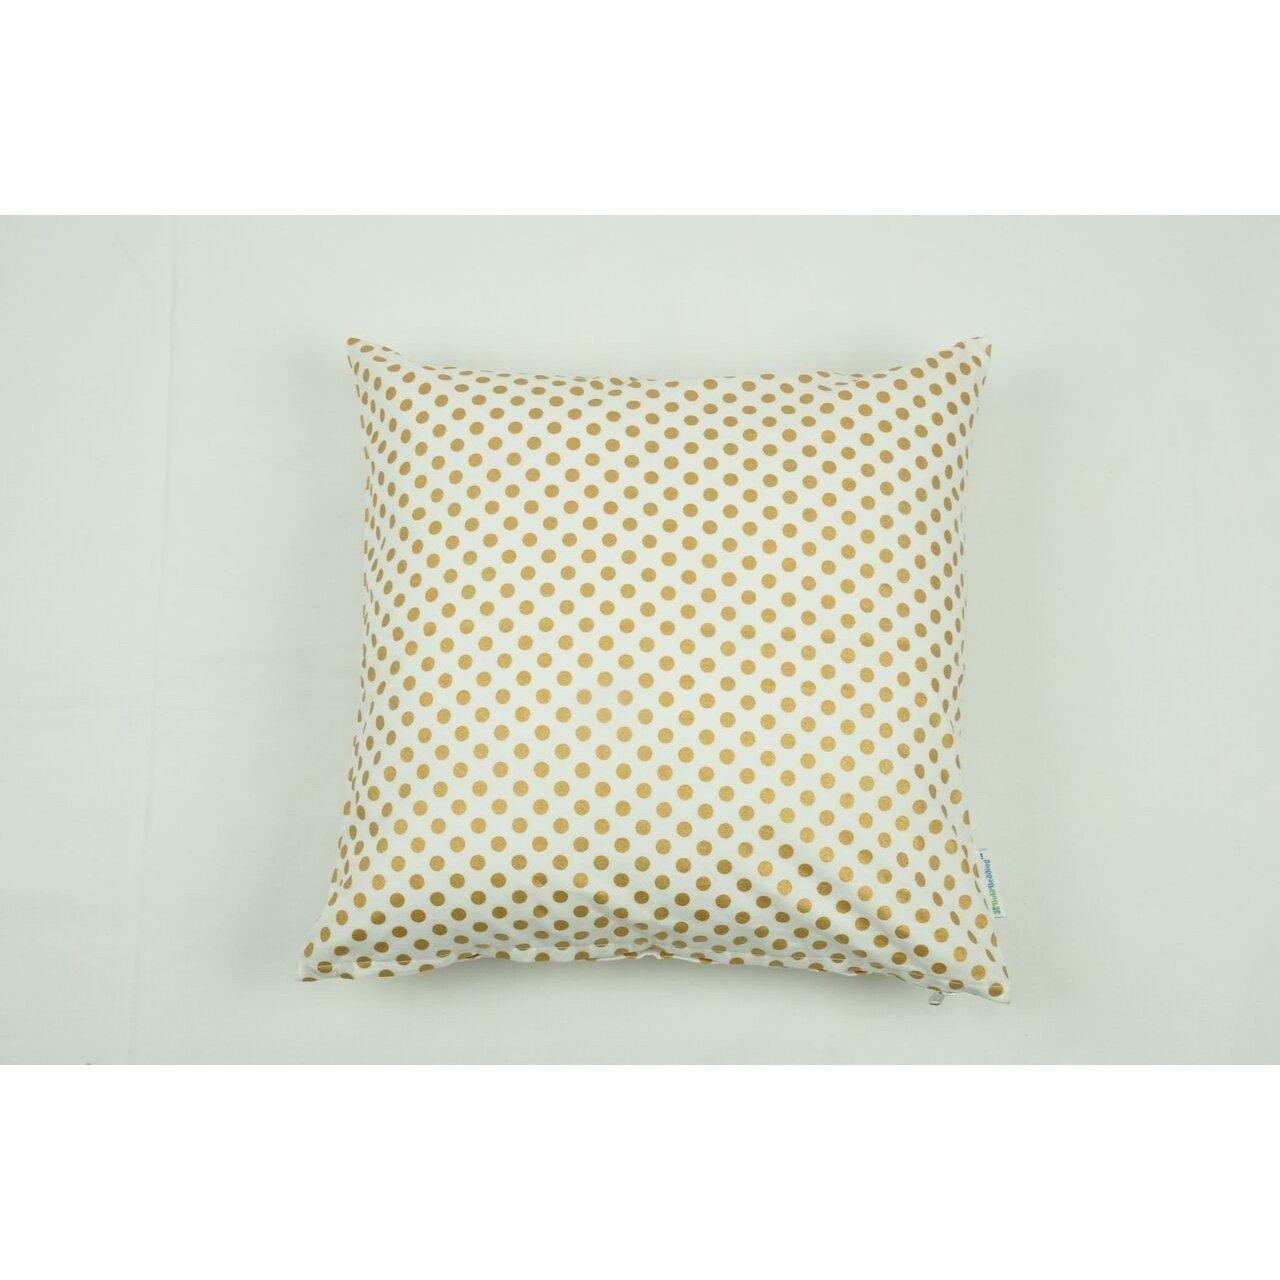 Throw Pillow Cover | Metallic Gold Dots-Square Pillows-Jack and Jill Boutique